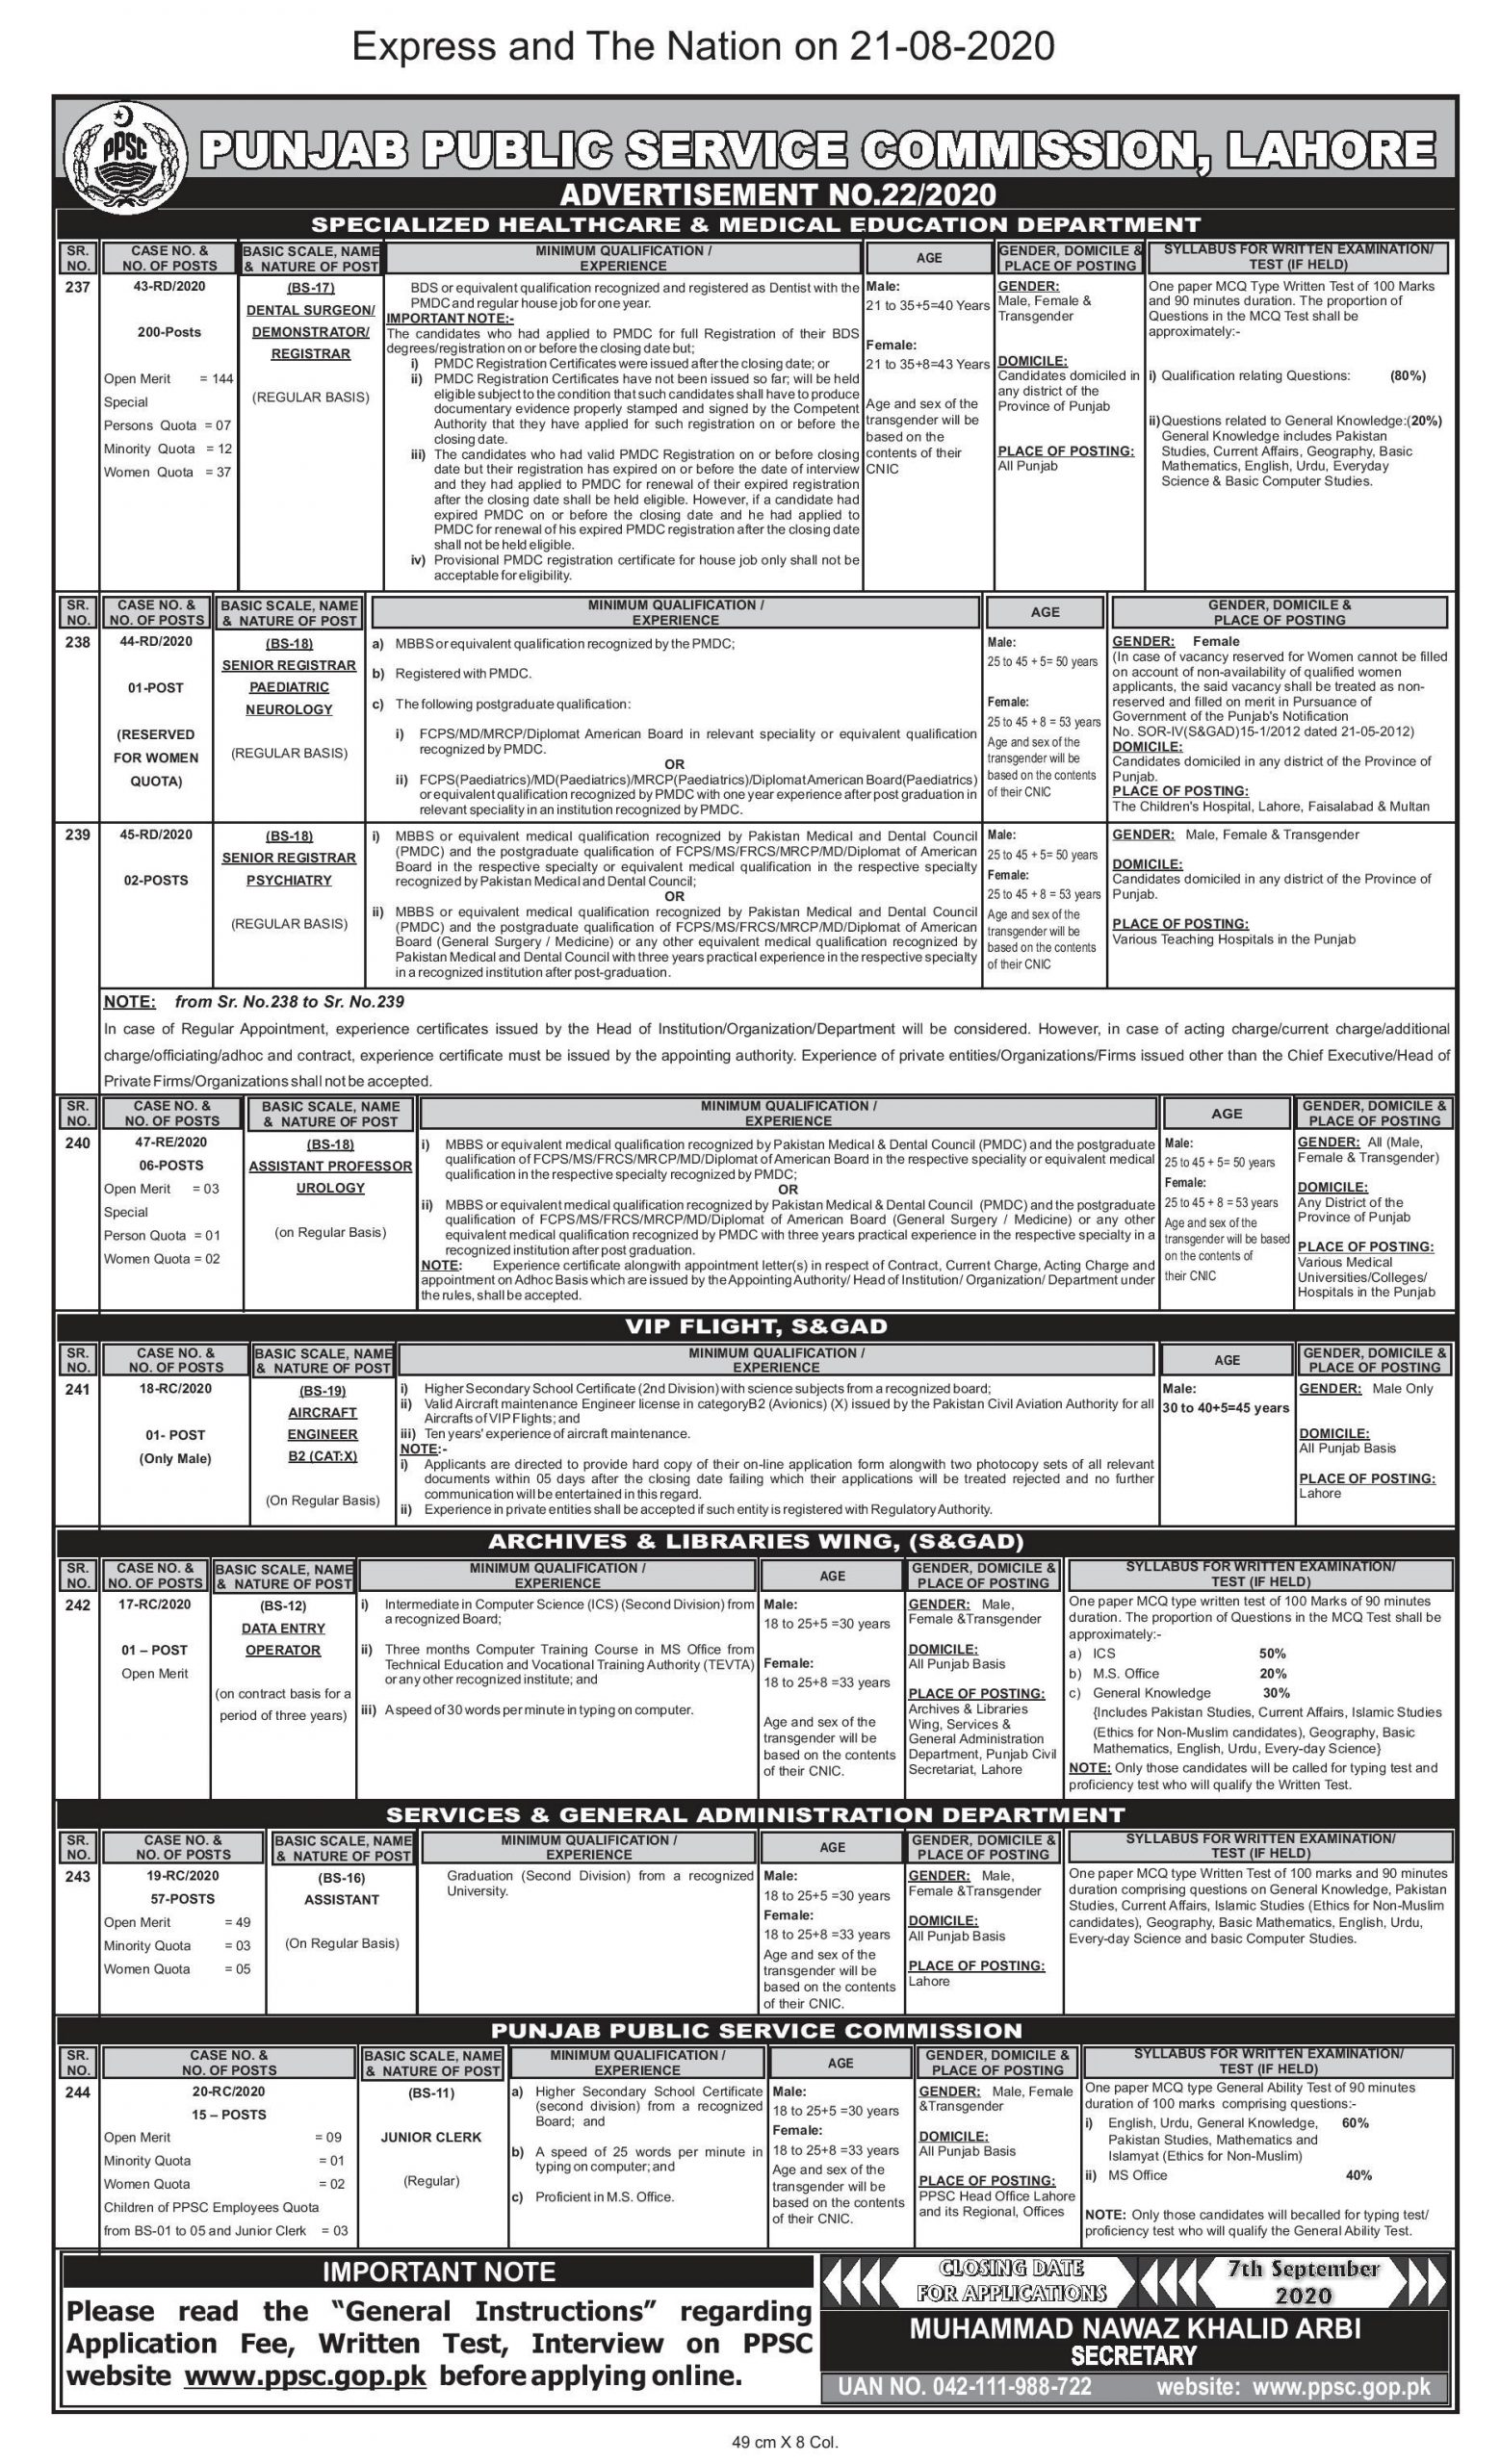 PPSC assistant DEO Aircraft Engineer Jobs in S & GAD